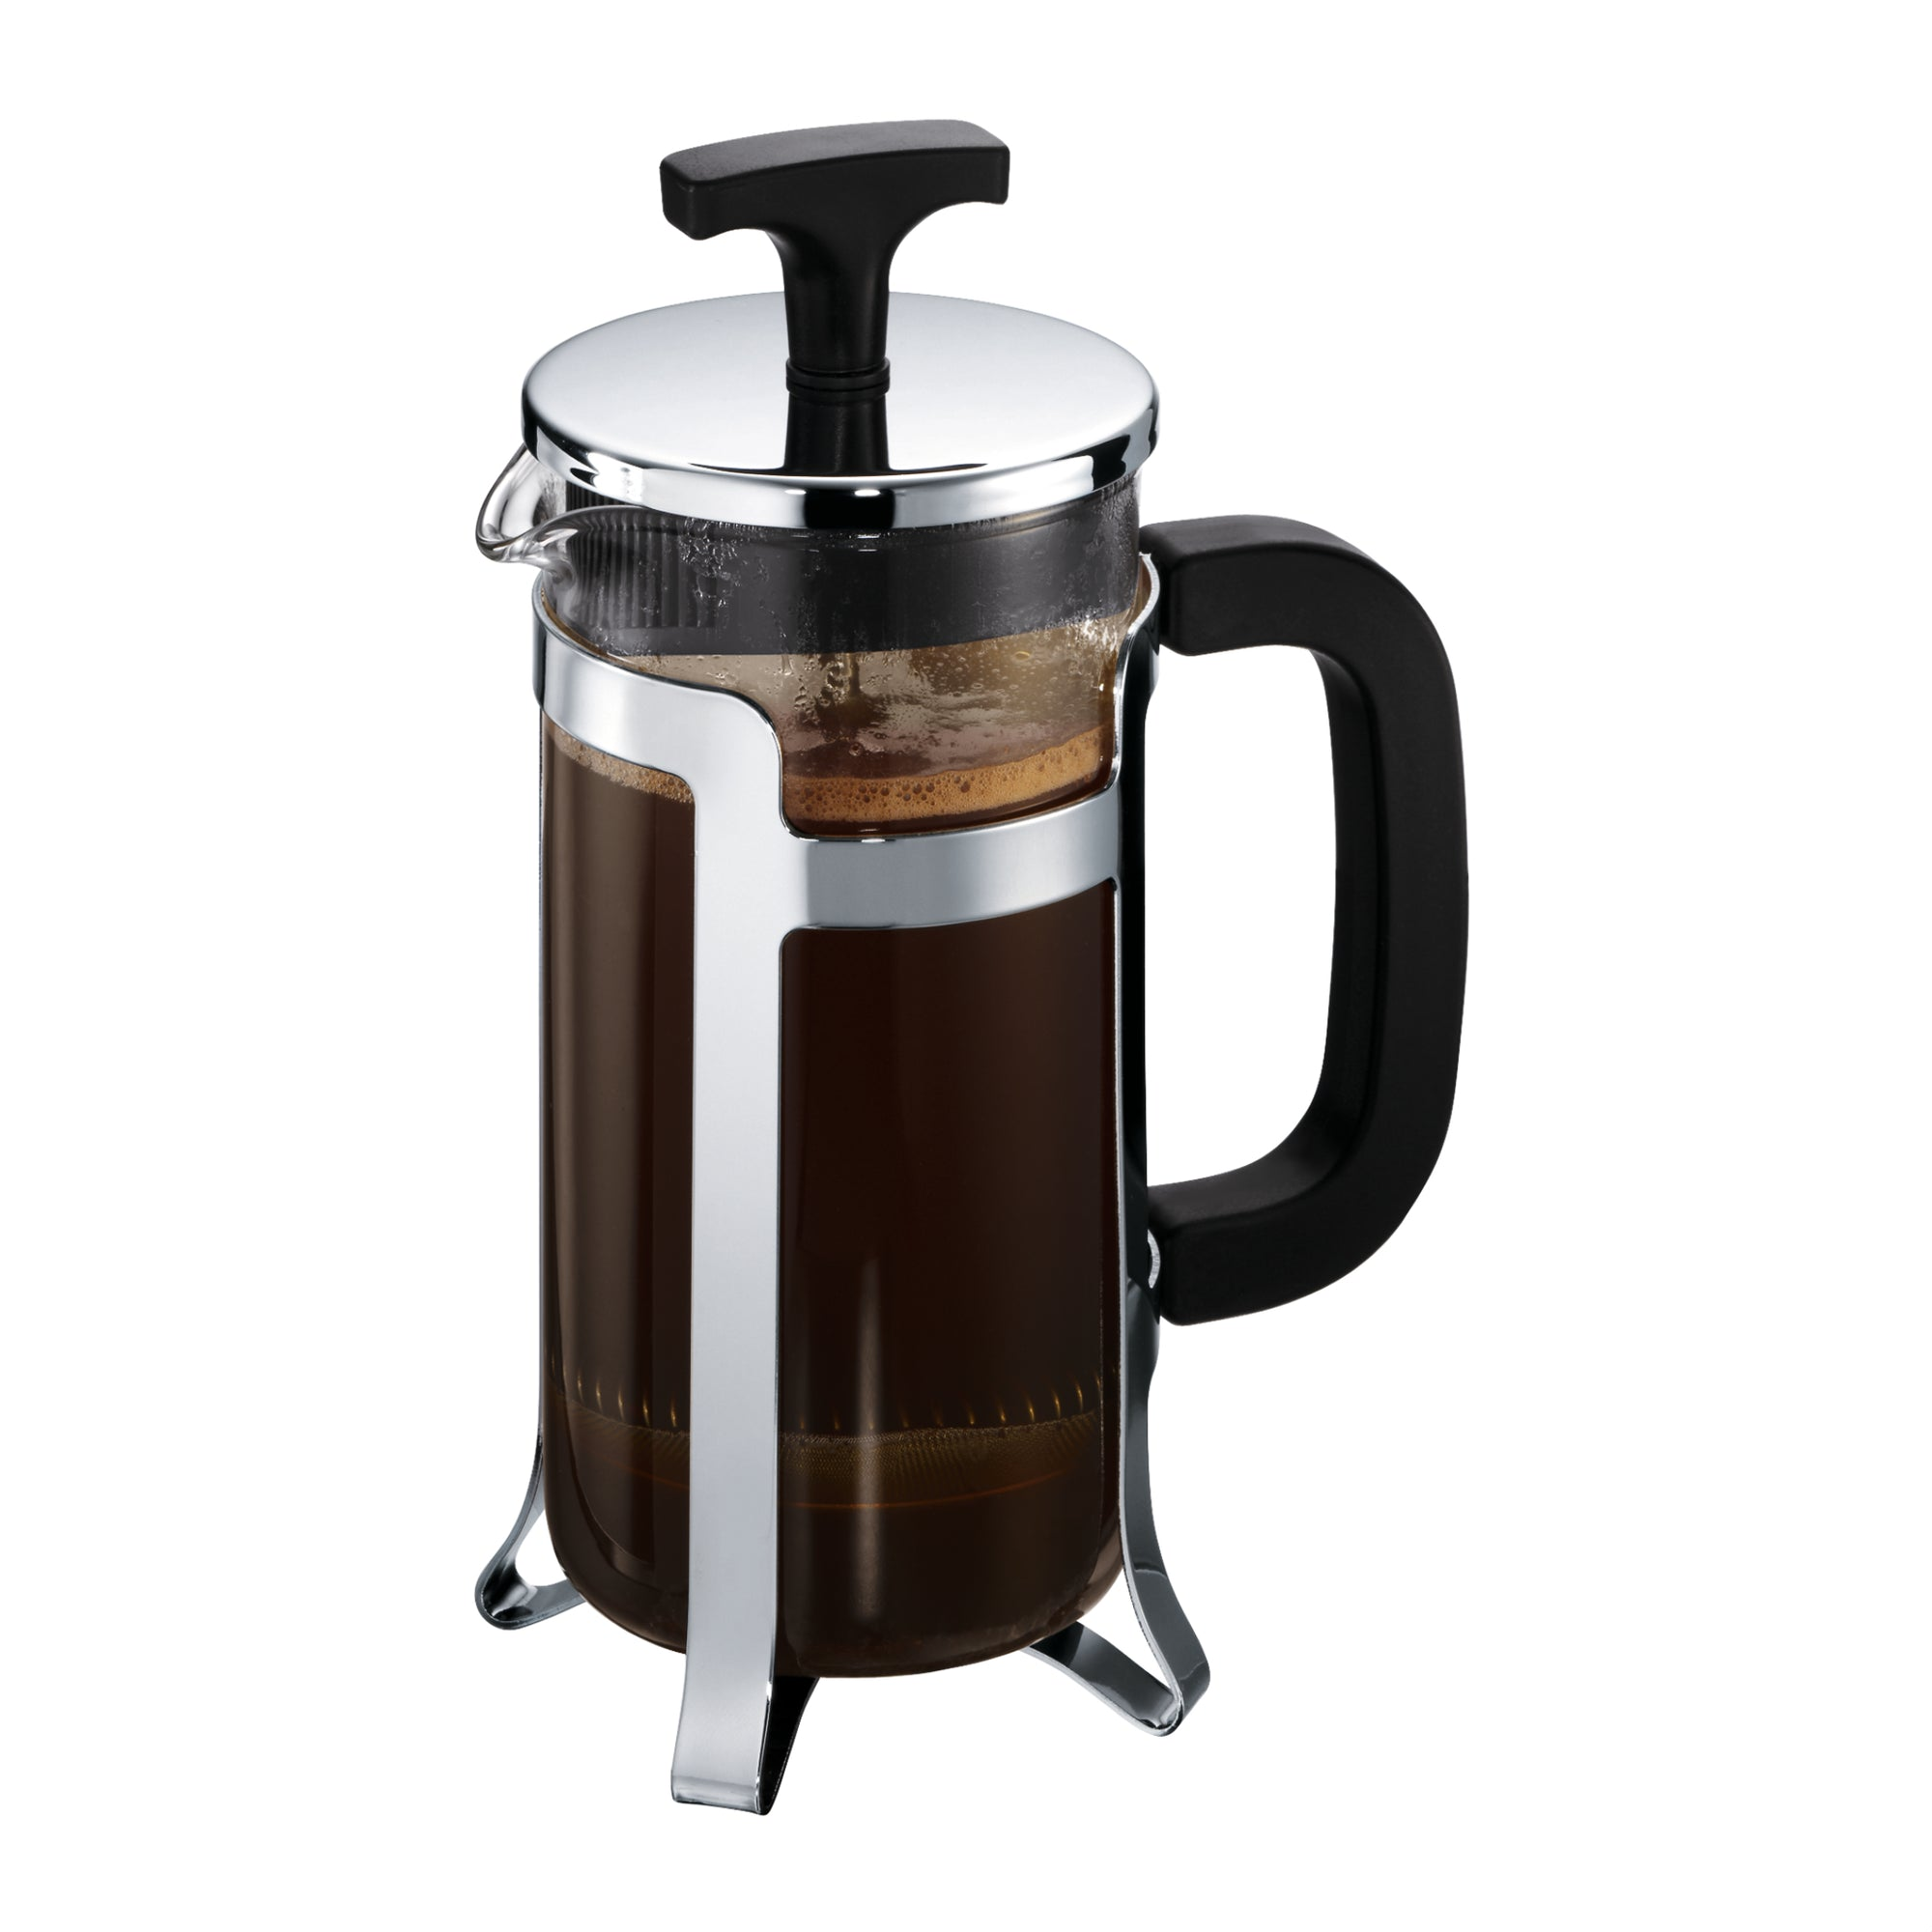 Jesper 3 Cup Coffeemaker With Stainless Steel Lid 0.35L/12oz